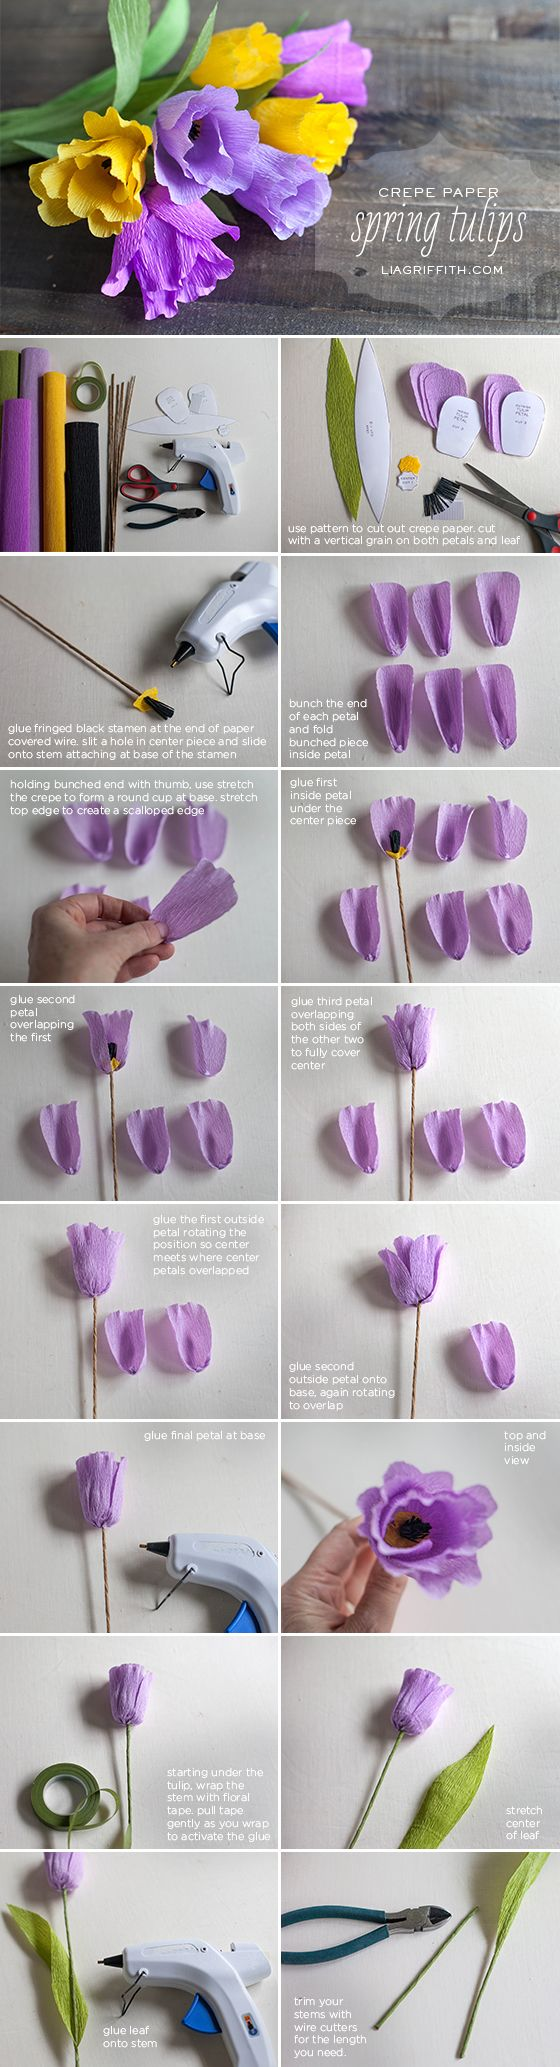 how to make tulip flower with crepe paper